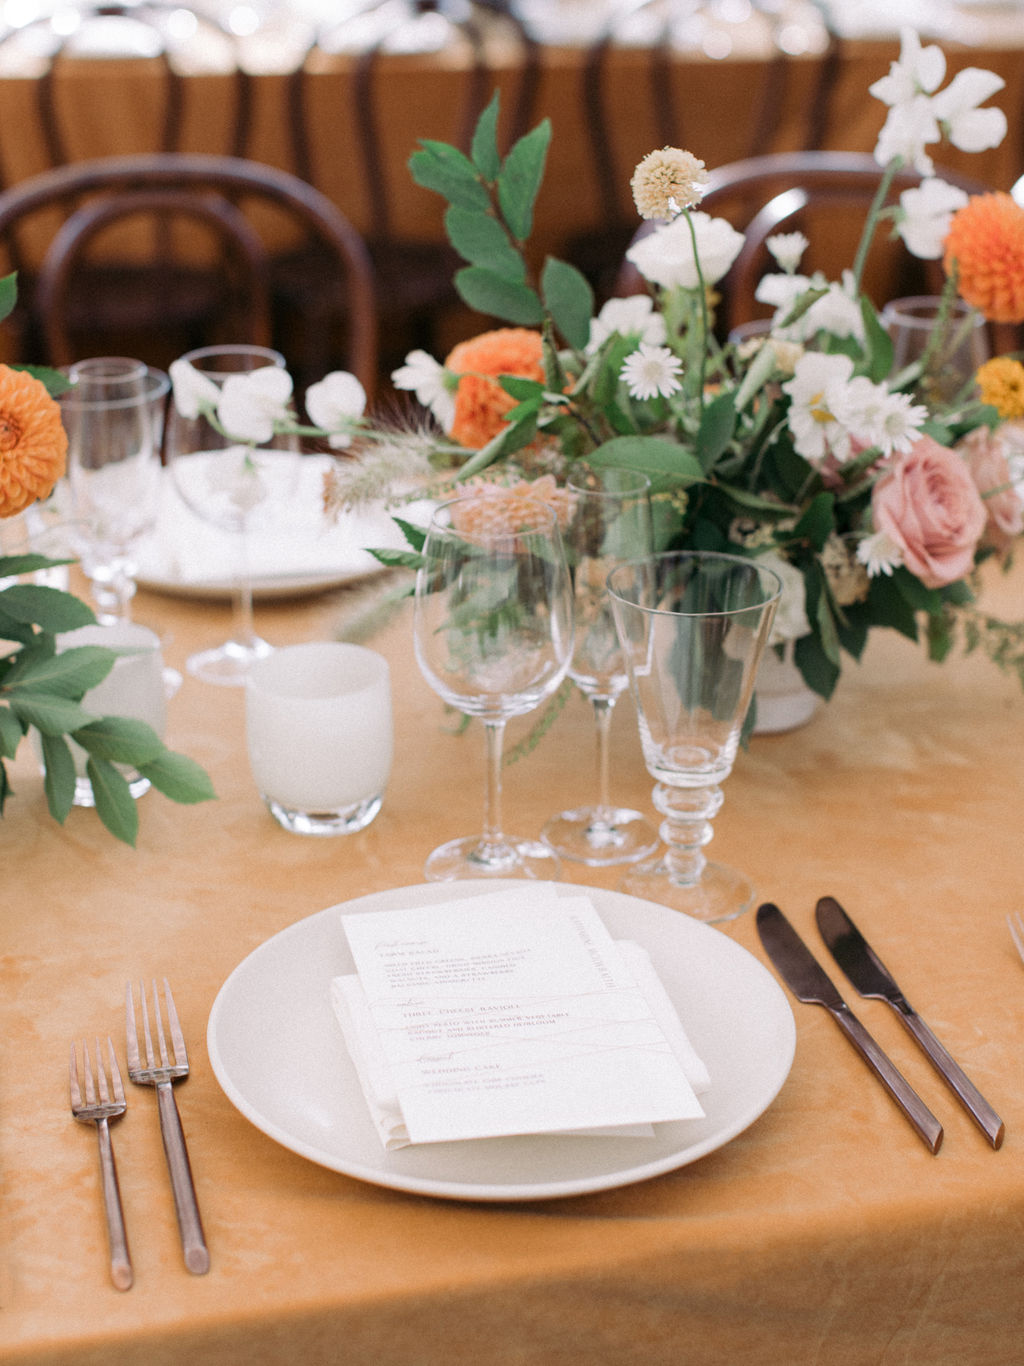 wedding reception place setting with bronze flatware and ceramic plates